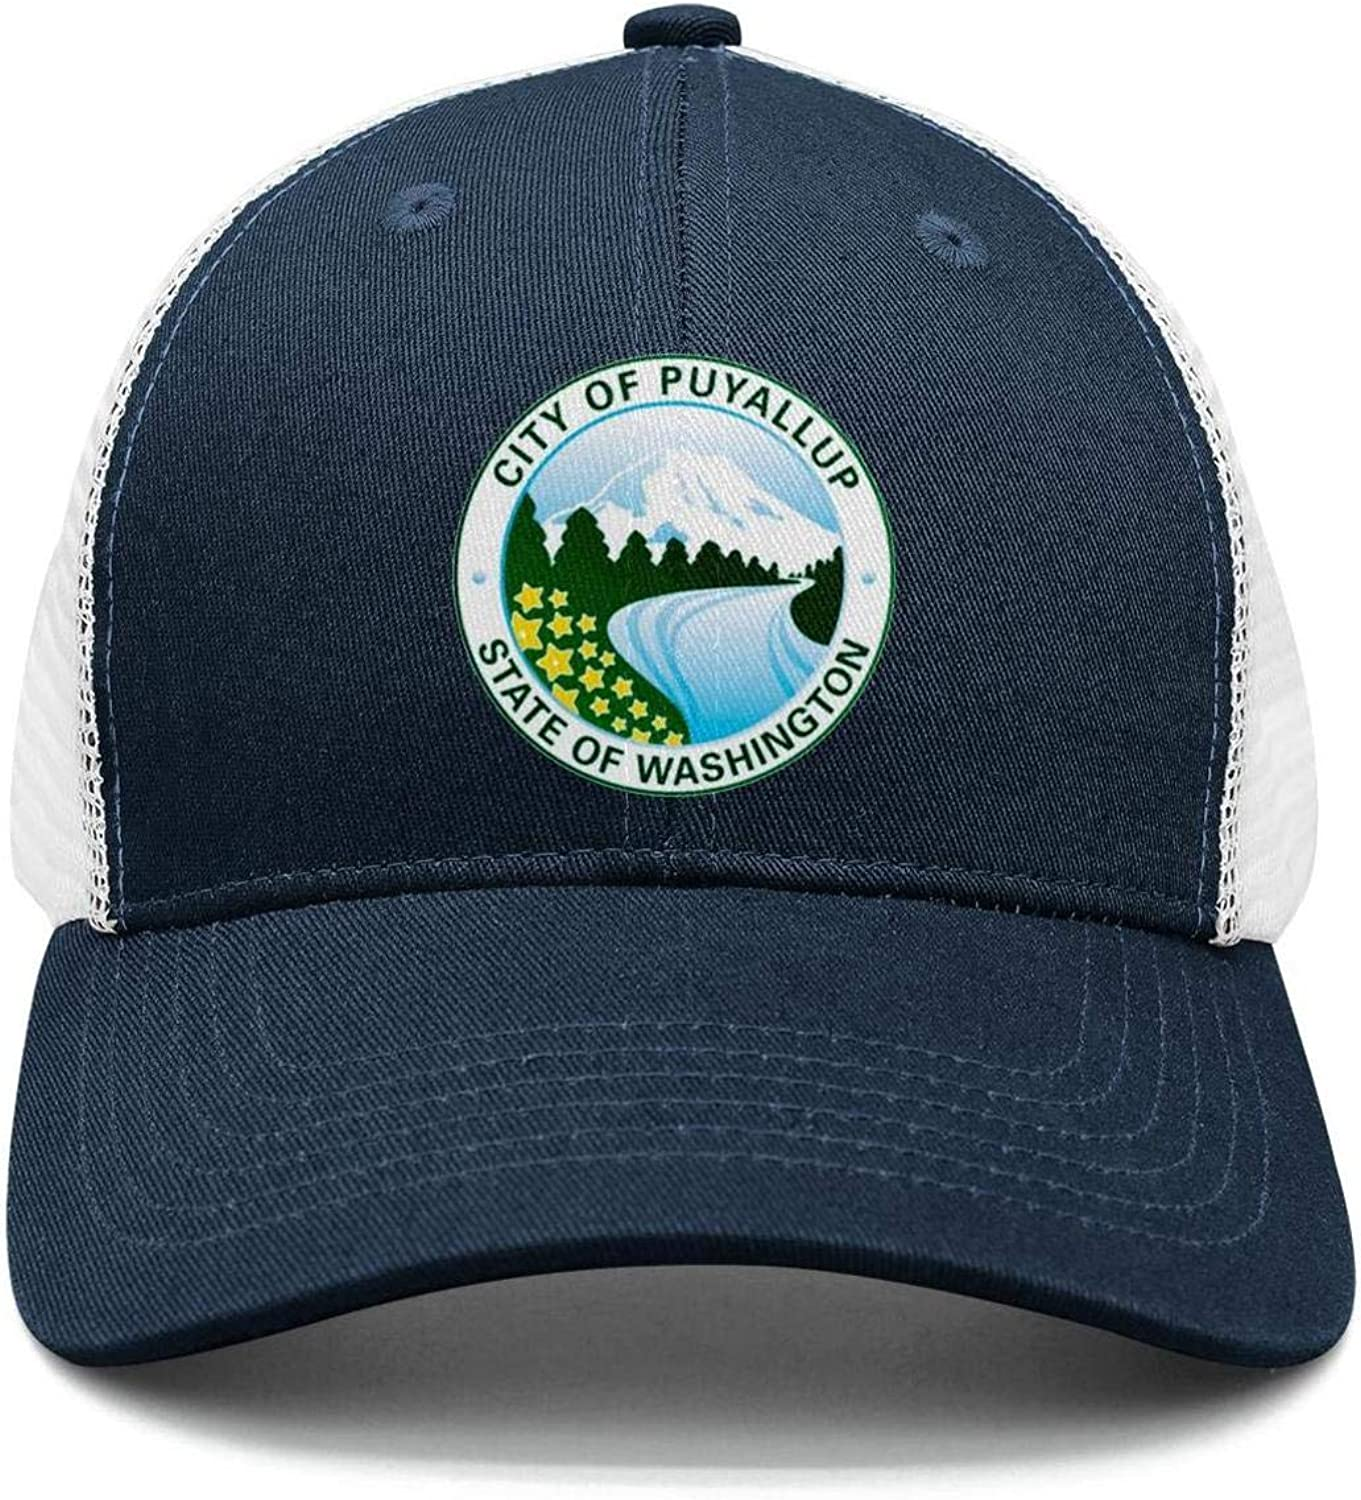 smsdpmc Bellingham-Funny-Washington Cotton Casual Trucker hat Adjustable Fits Mesh Baseball Caps for Man and Woman